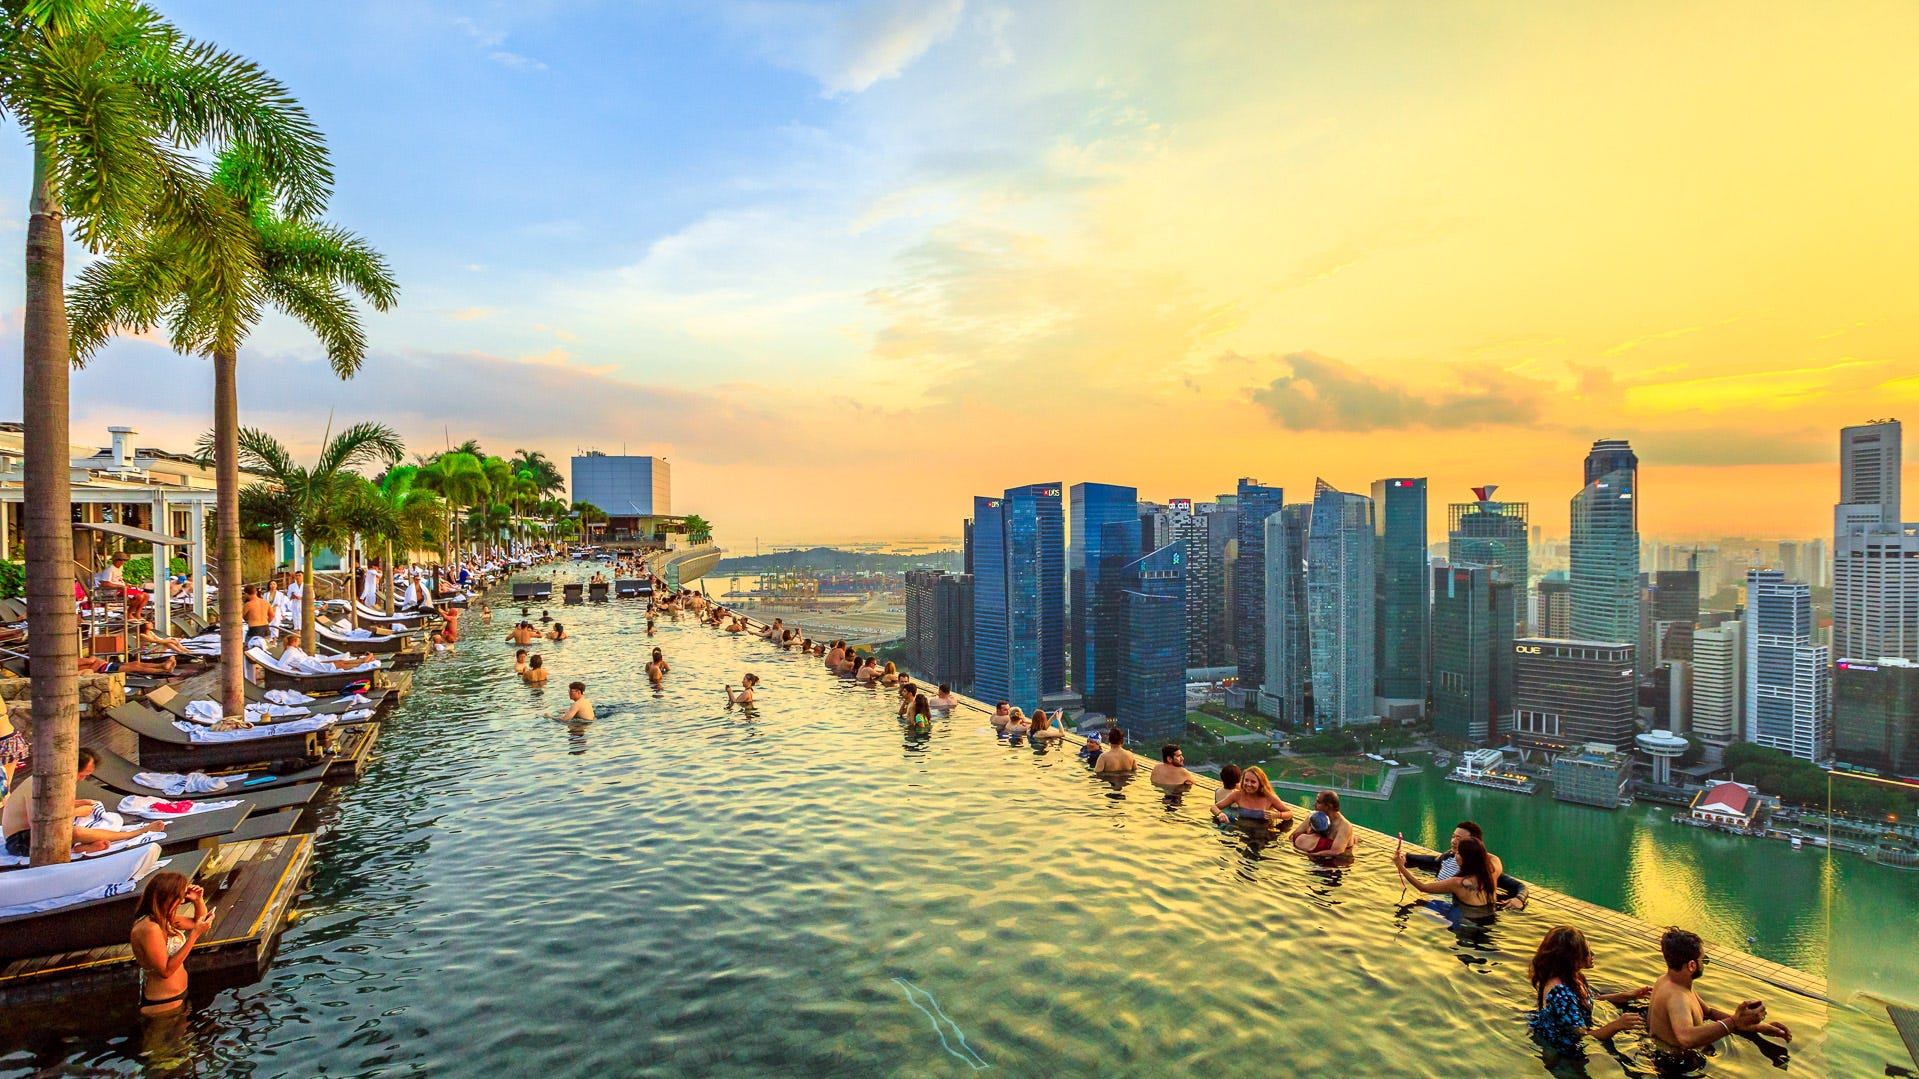 "16. Singapore. Total cost per day: $87.47. Although you'll spend an average of $47.67 per night on hotels in Singapore — the third-most expensive lodging cost on this list — it's still considered one of the cheapest countries to visit. You don't need the budget of 2018's ""Crazy Rich Asians"" to enjoy a fun tropical vacation in Singapore. However, keep in mind that round-trip flights from JFK cost $879, which is the fourth-most expensive airfare in this ranking."